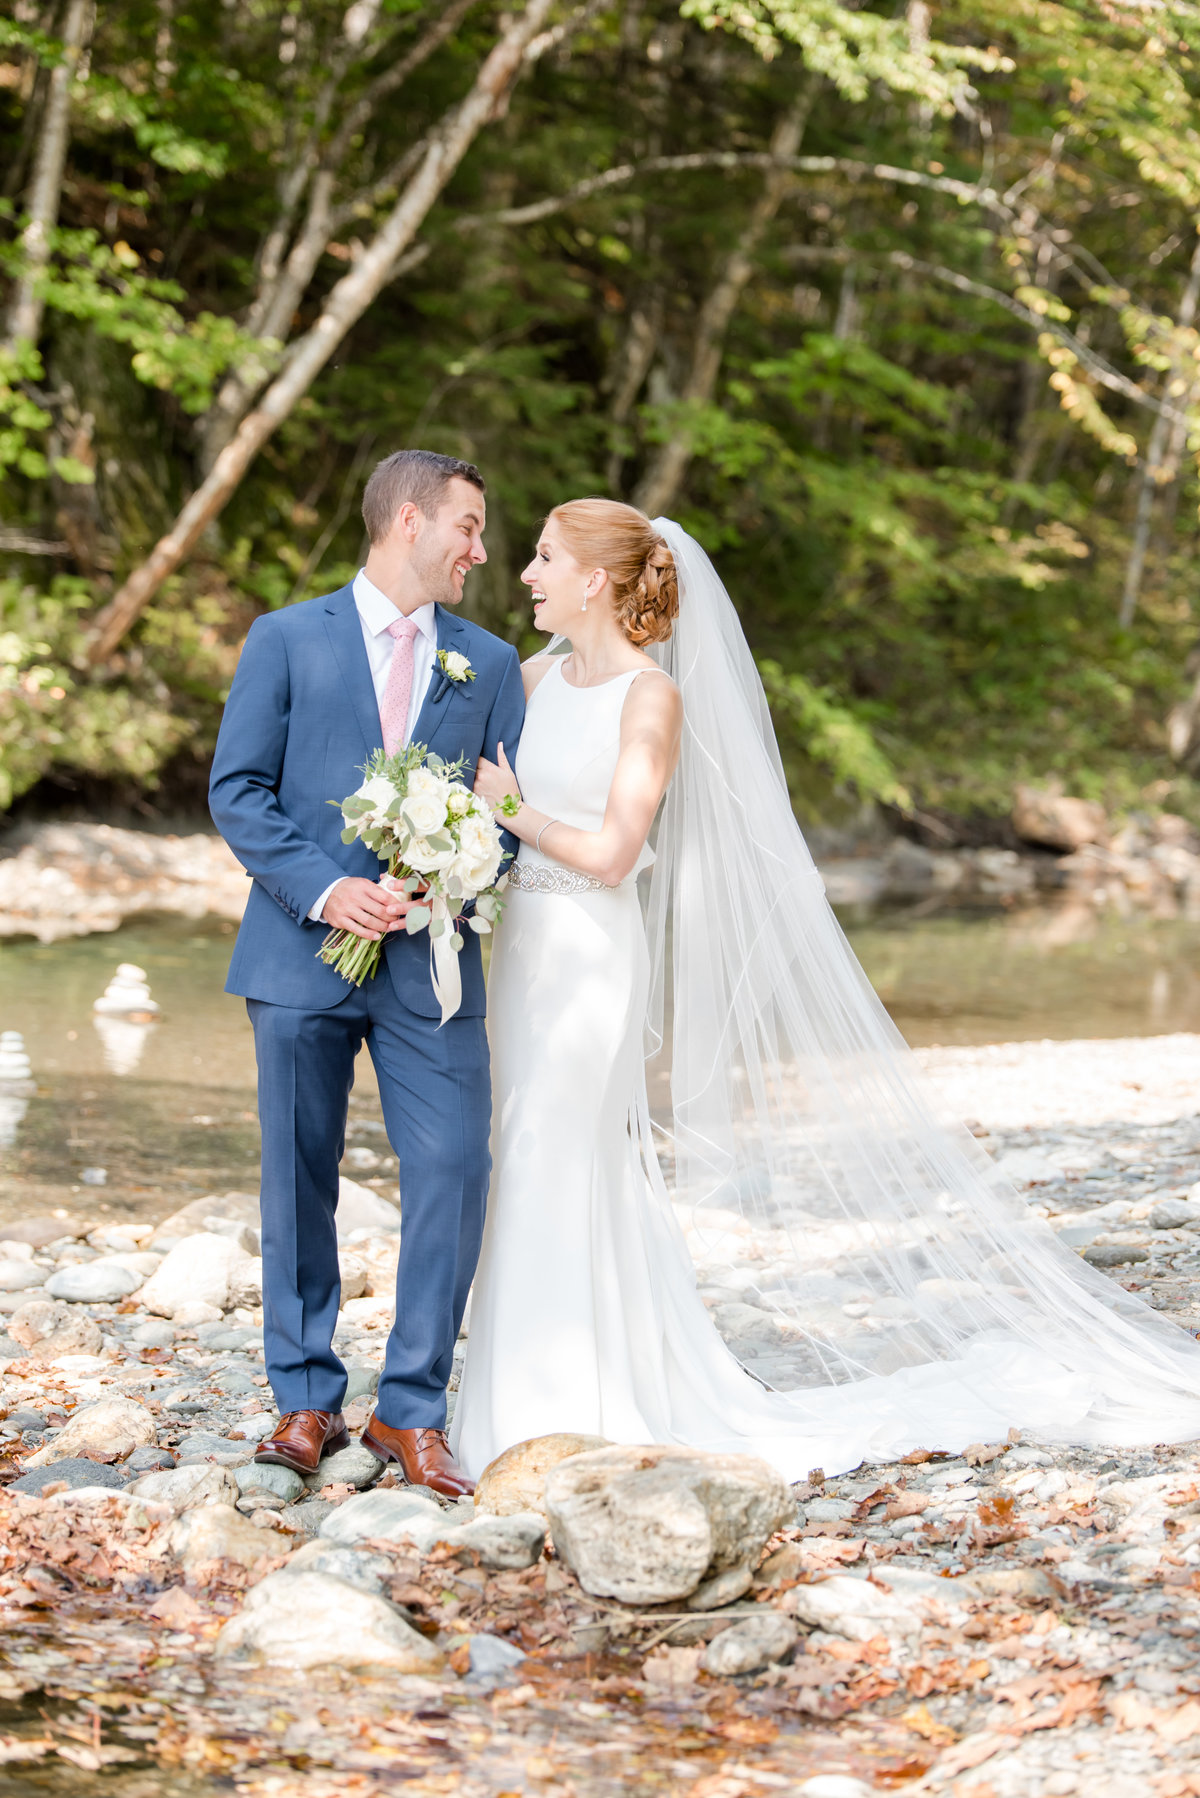 Sugarbush Vermont Wedding-Vermont Wedding Photographer-  Ashley and Joe Wedding 202468-13